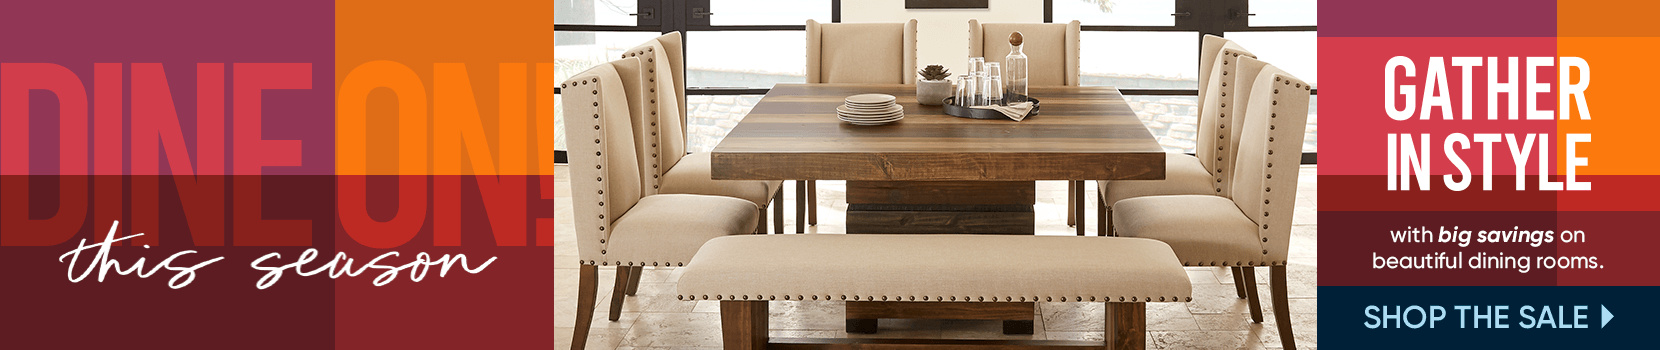 dine on this season. gather in style with big savings on beautiful dining rooms. shop the sale